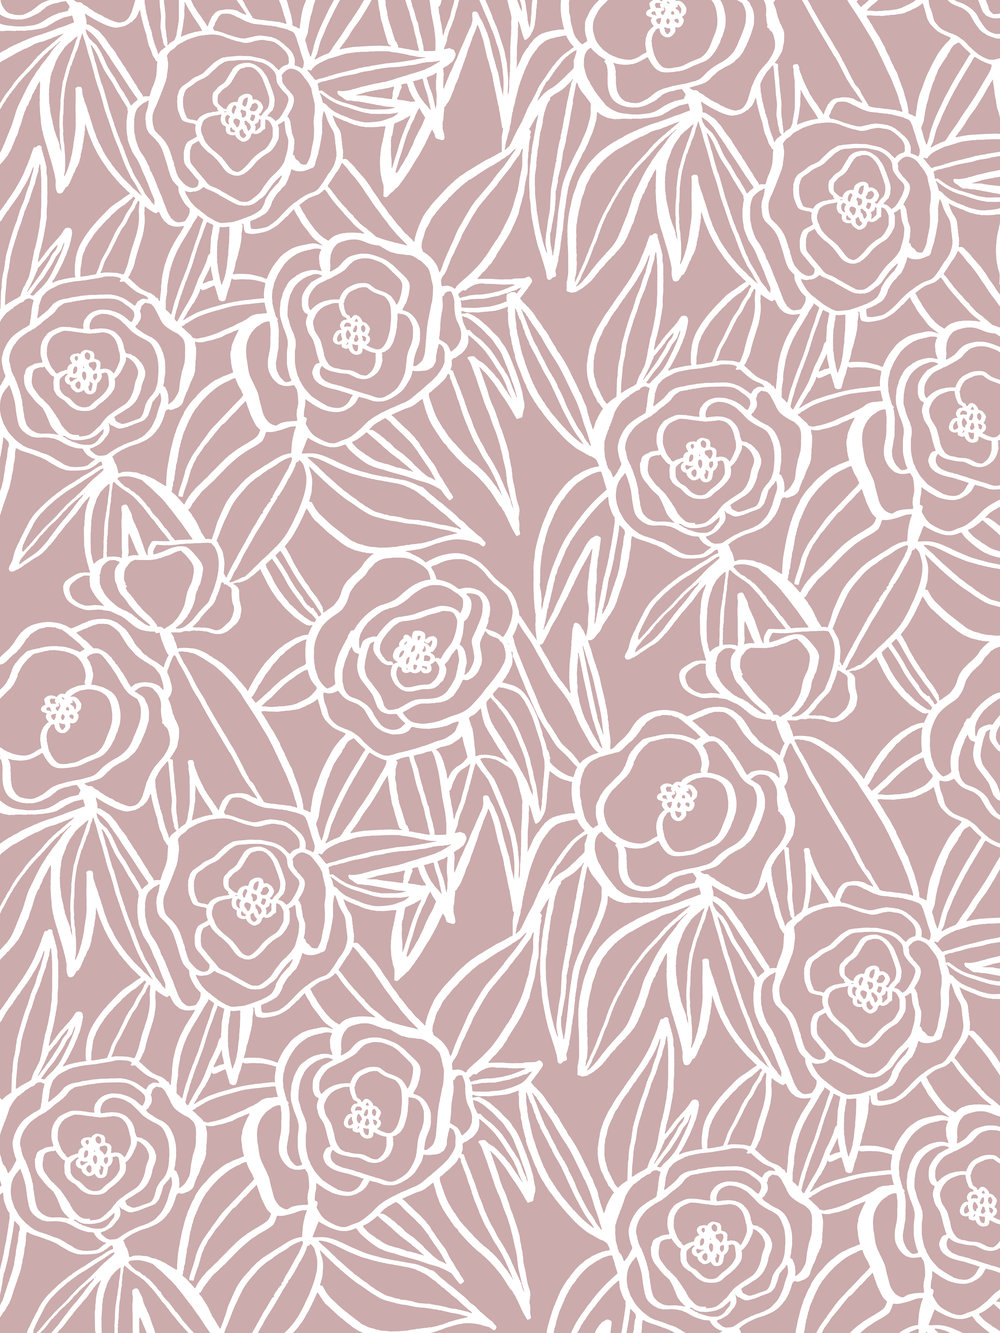 blooms pink background.jpg